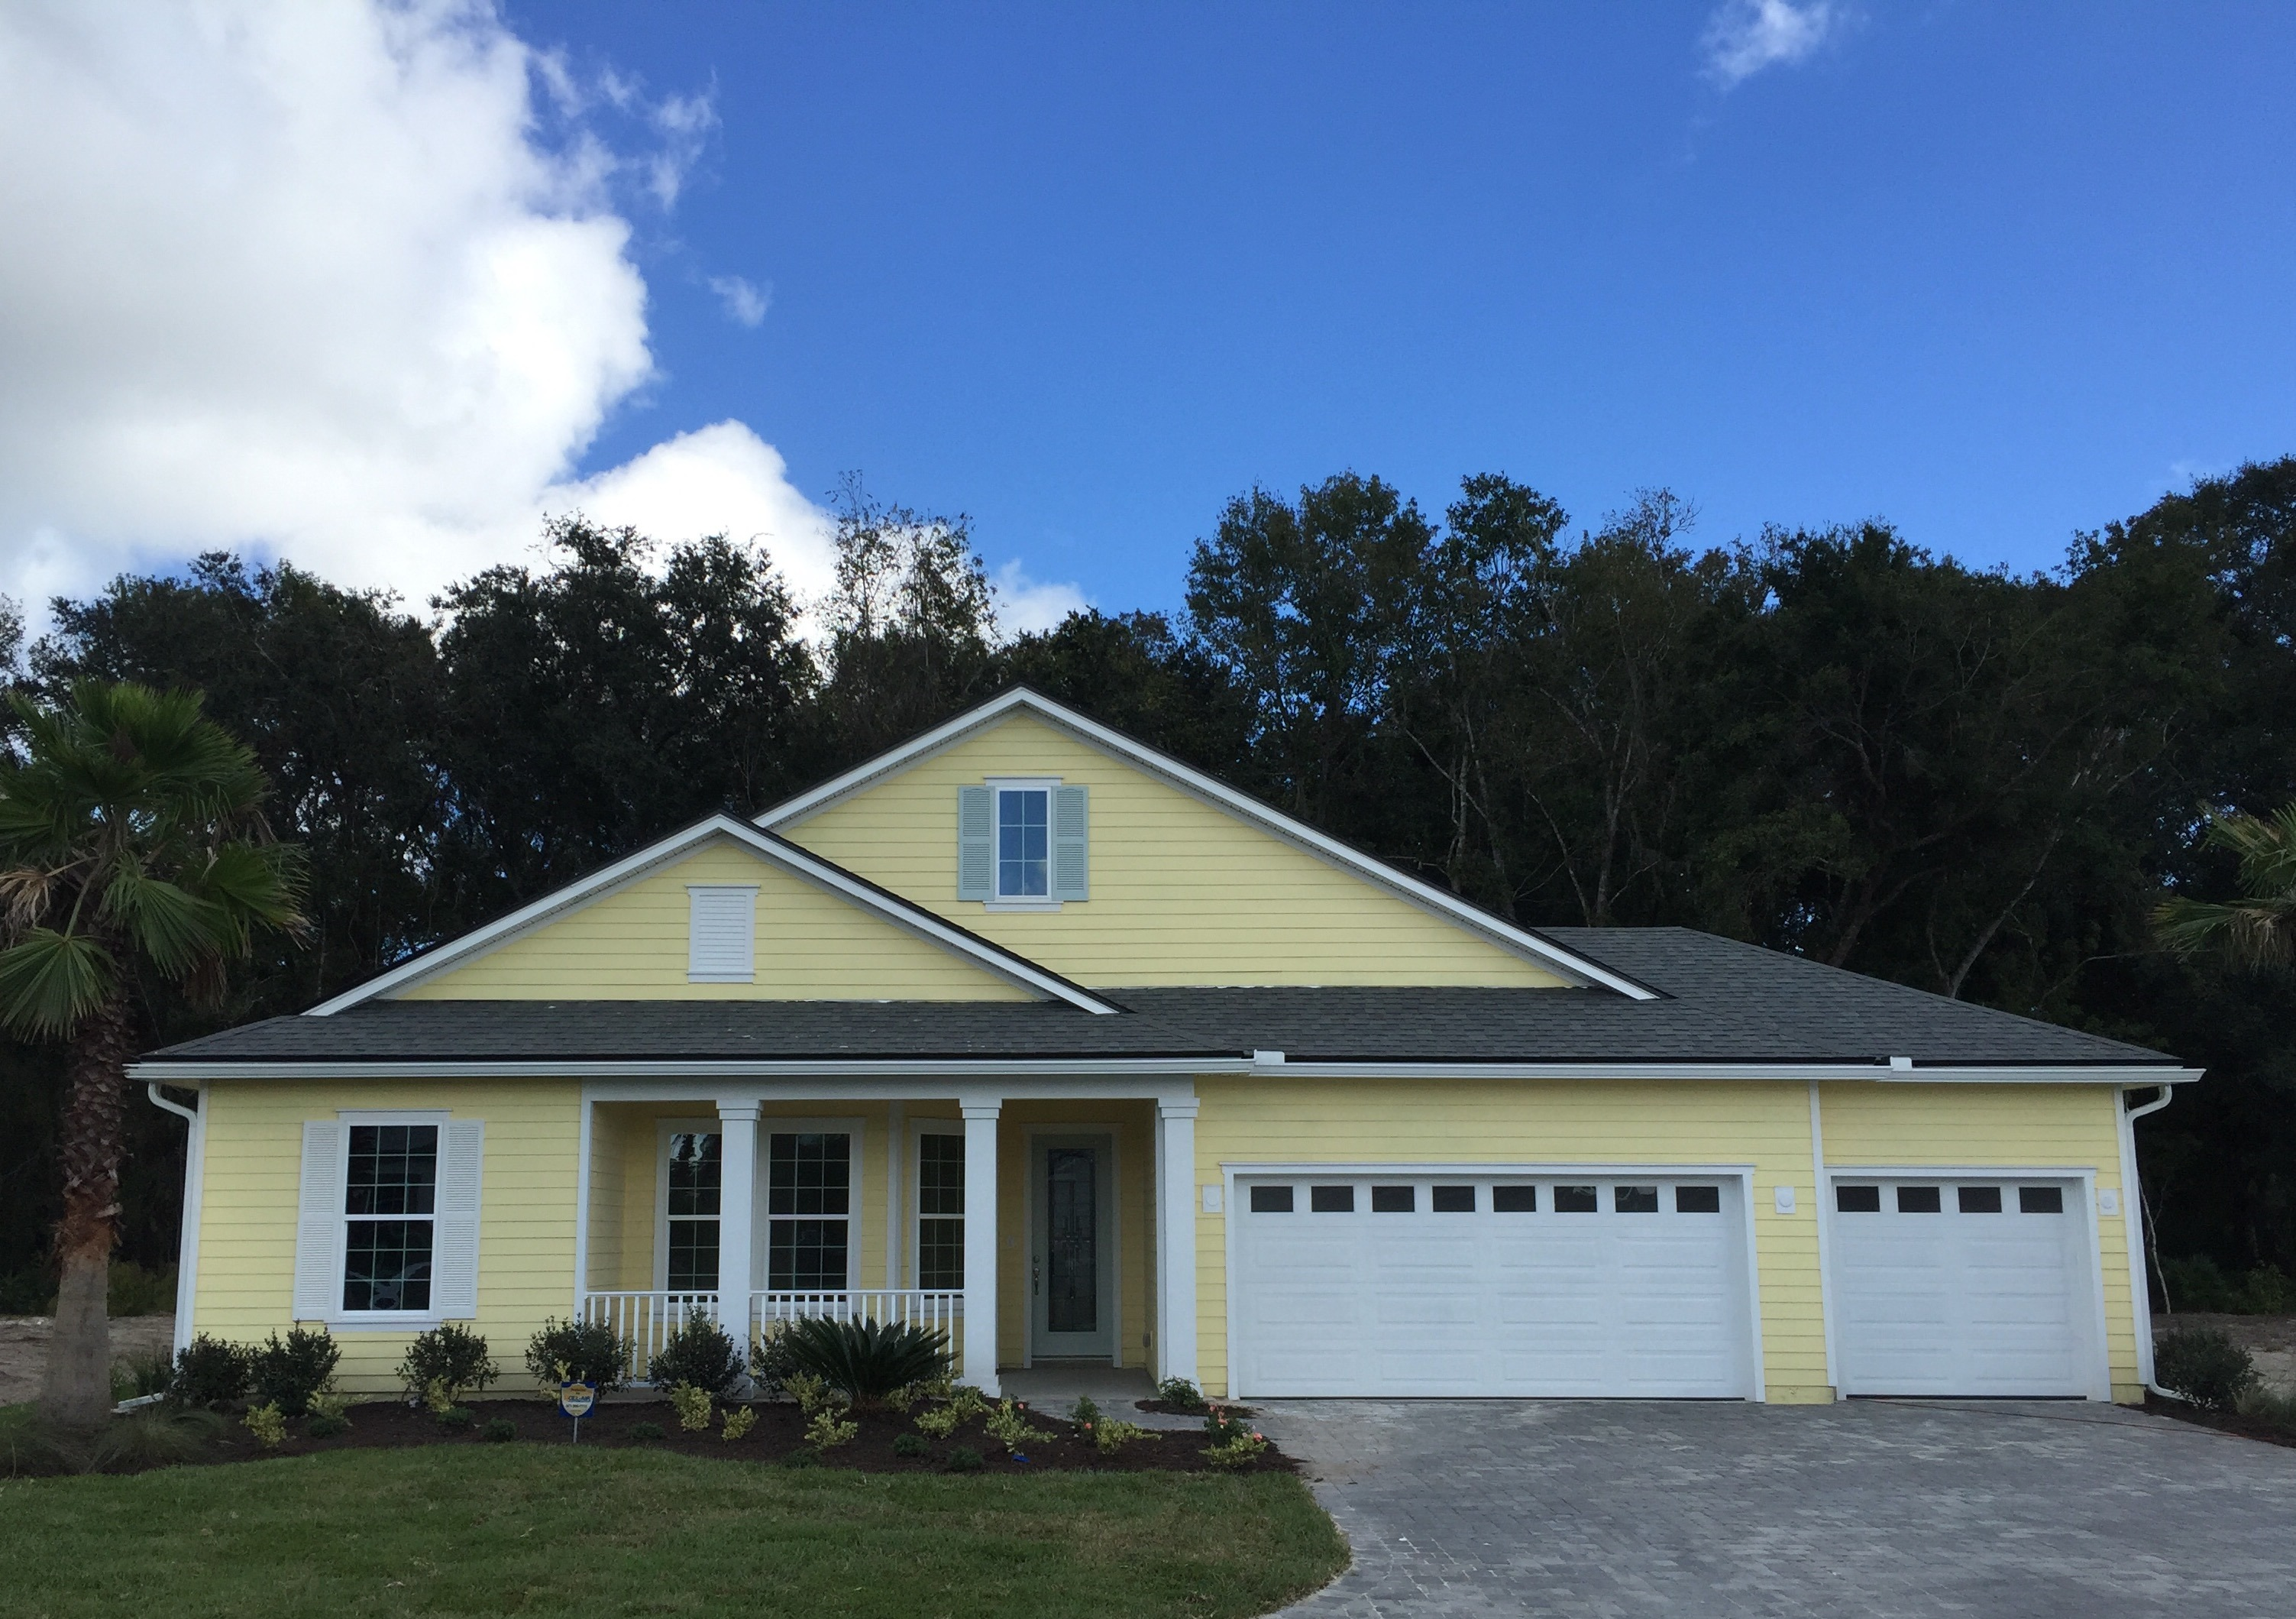 This Beautiful New Model Home By Landon Homes In Coquina Ridge